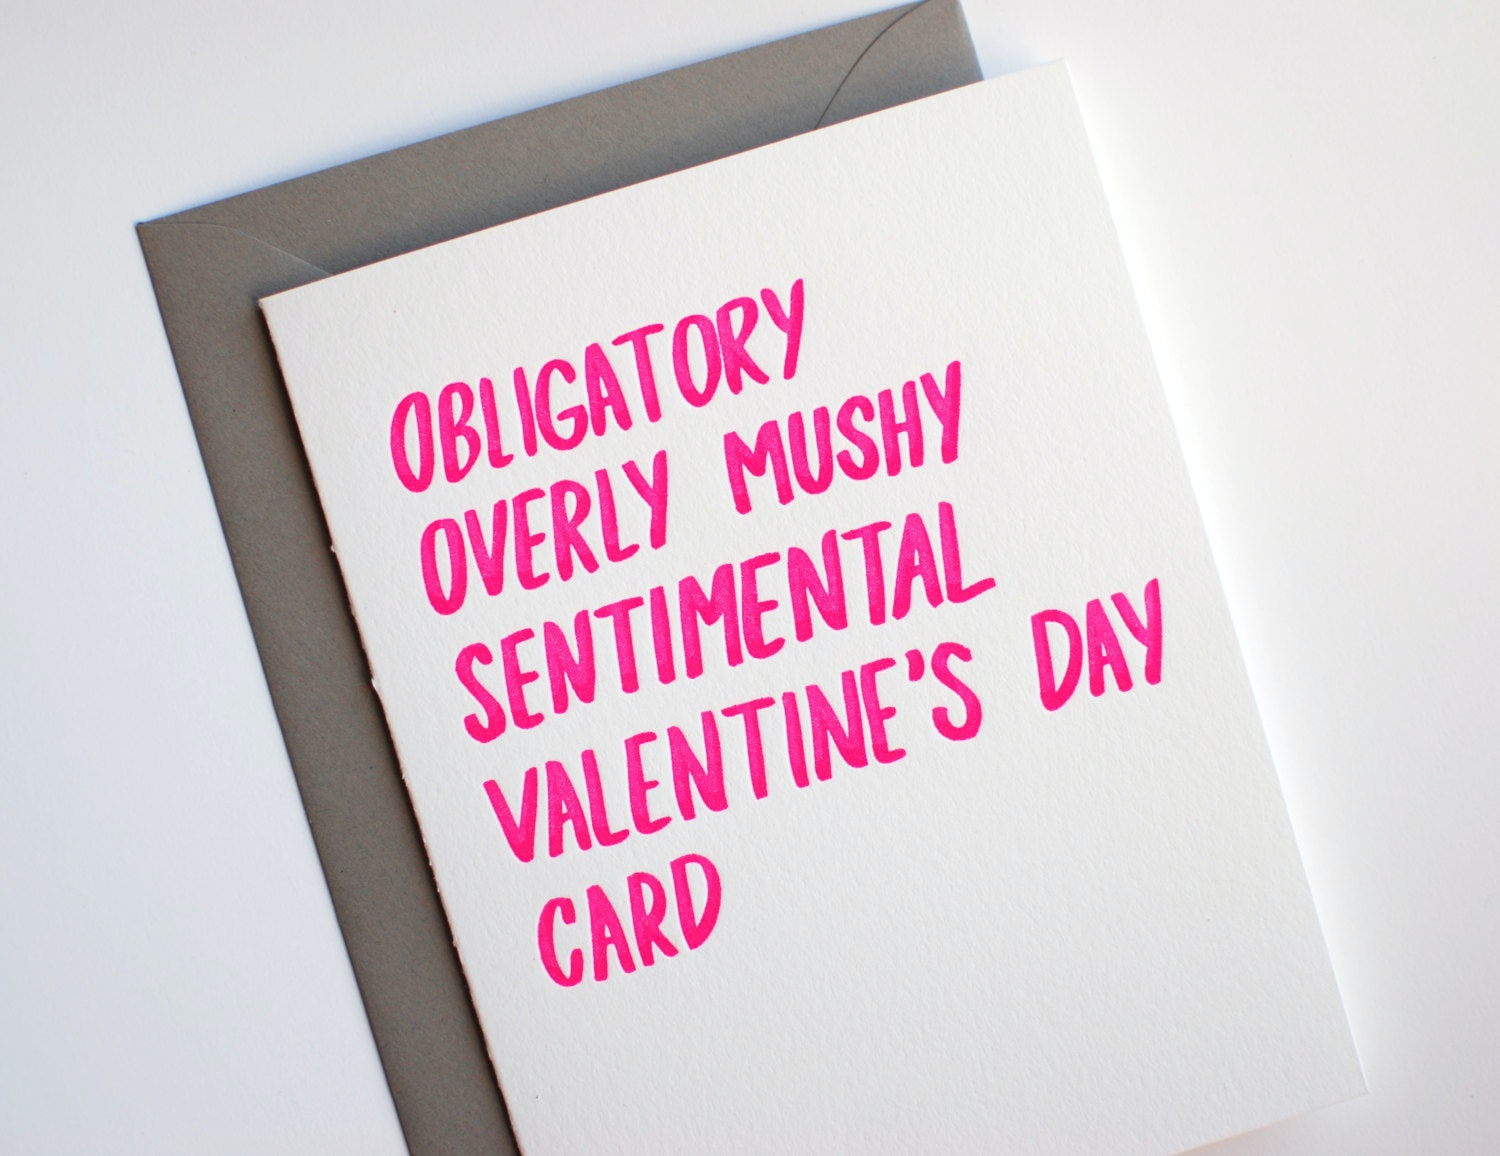 22 anti valentines day cards perfect for people who hate this holiday